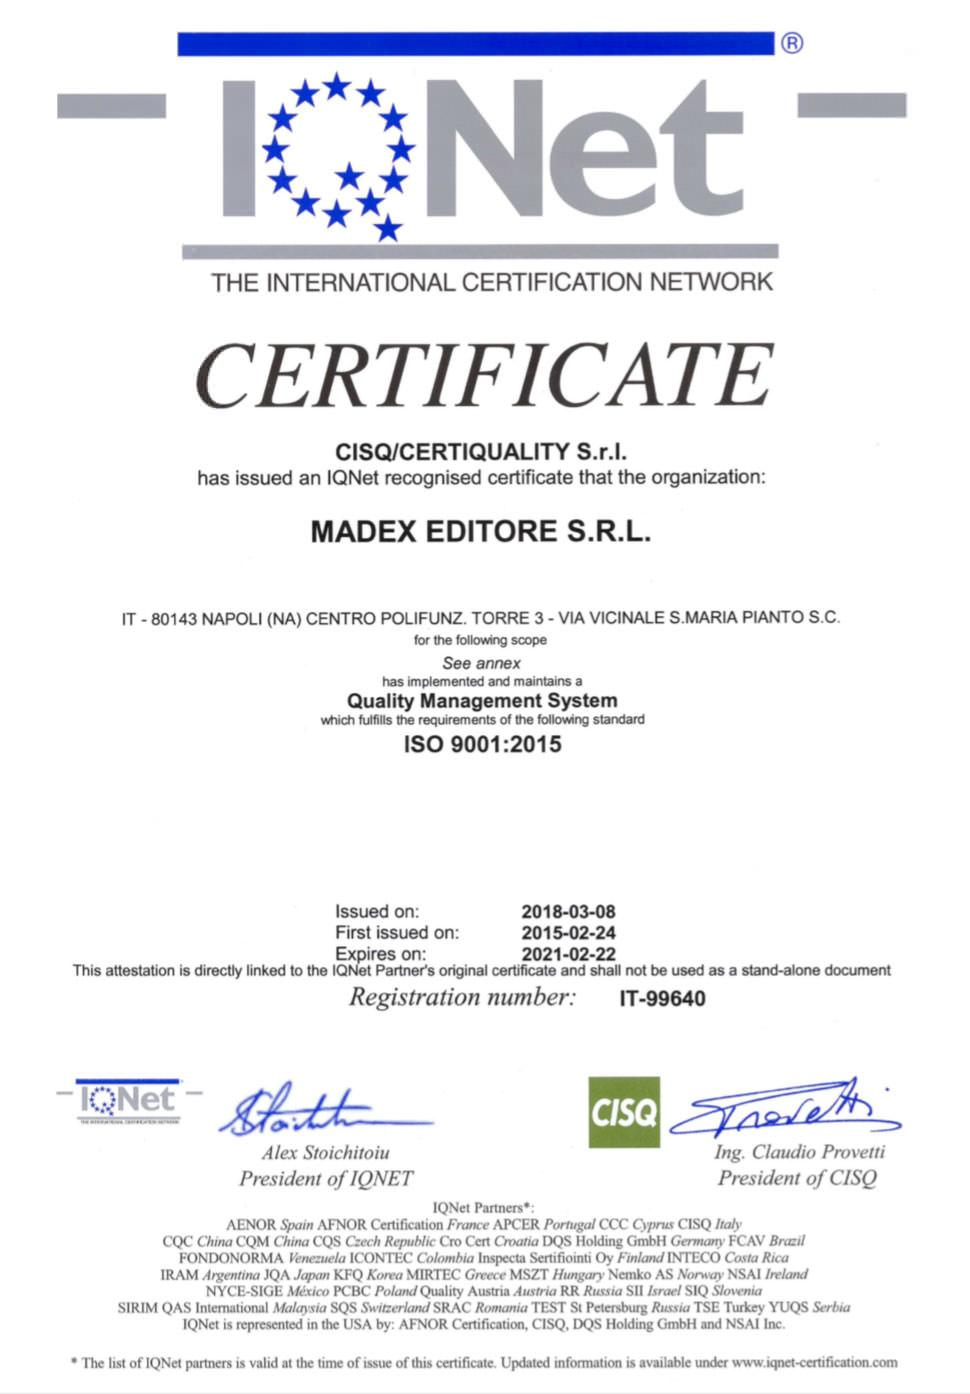 Certificate ISO 9001:2015 IQNET 1